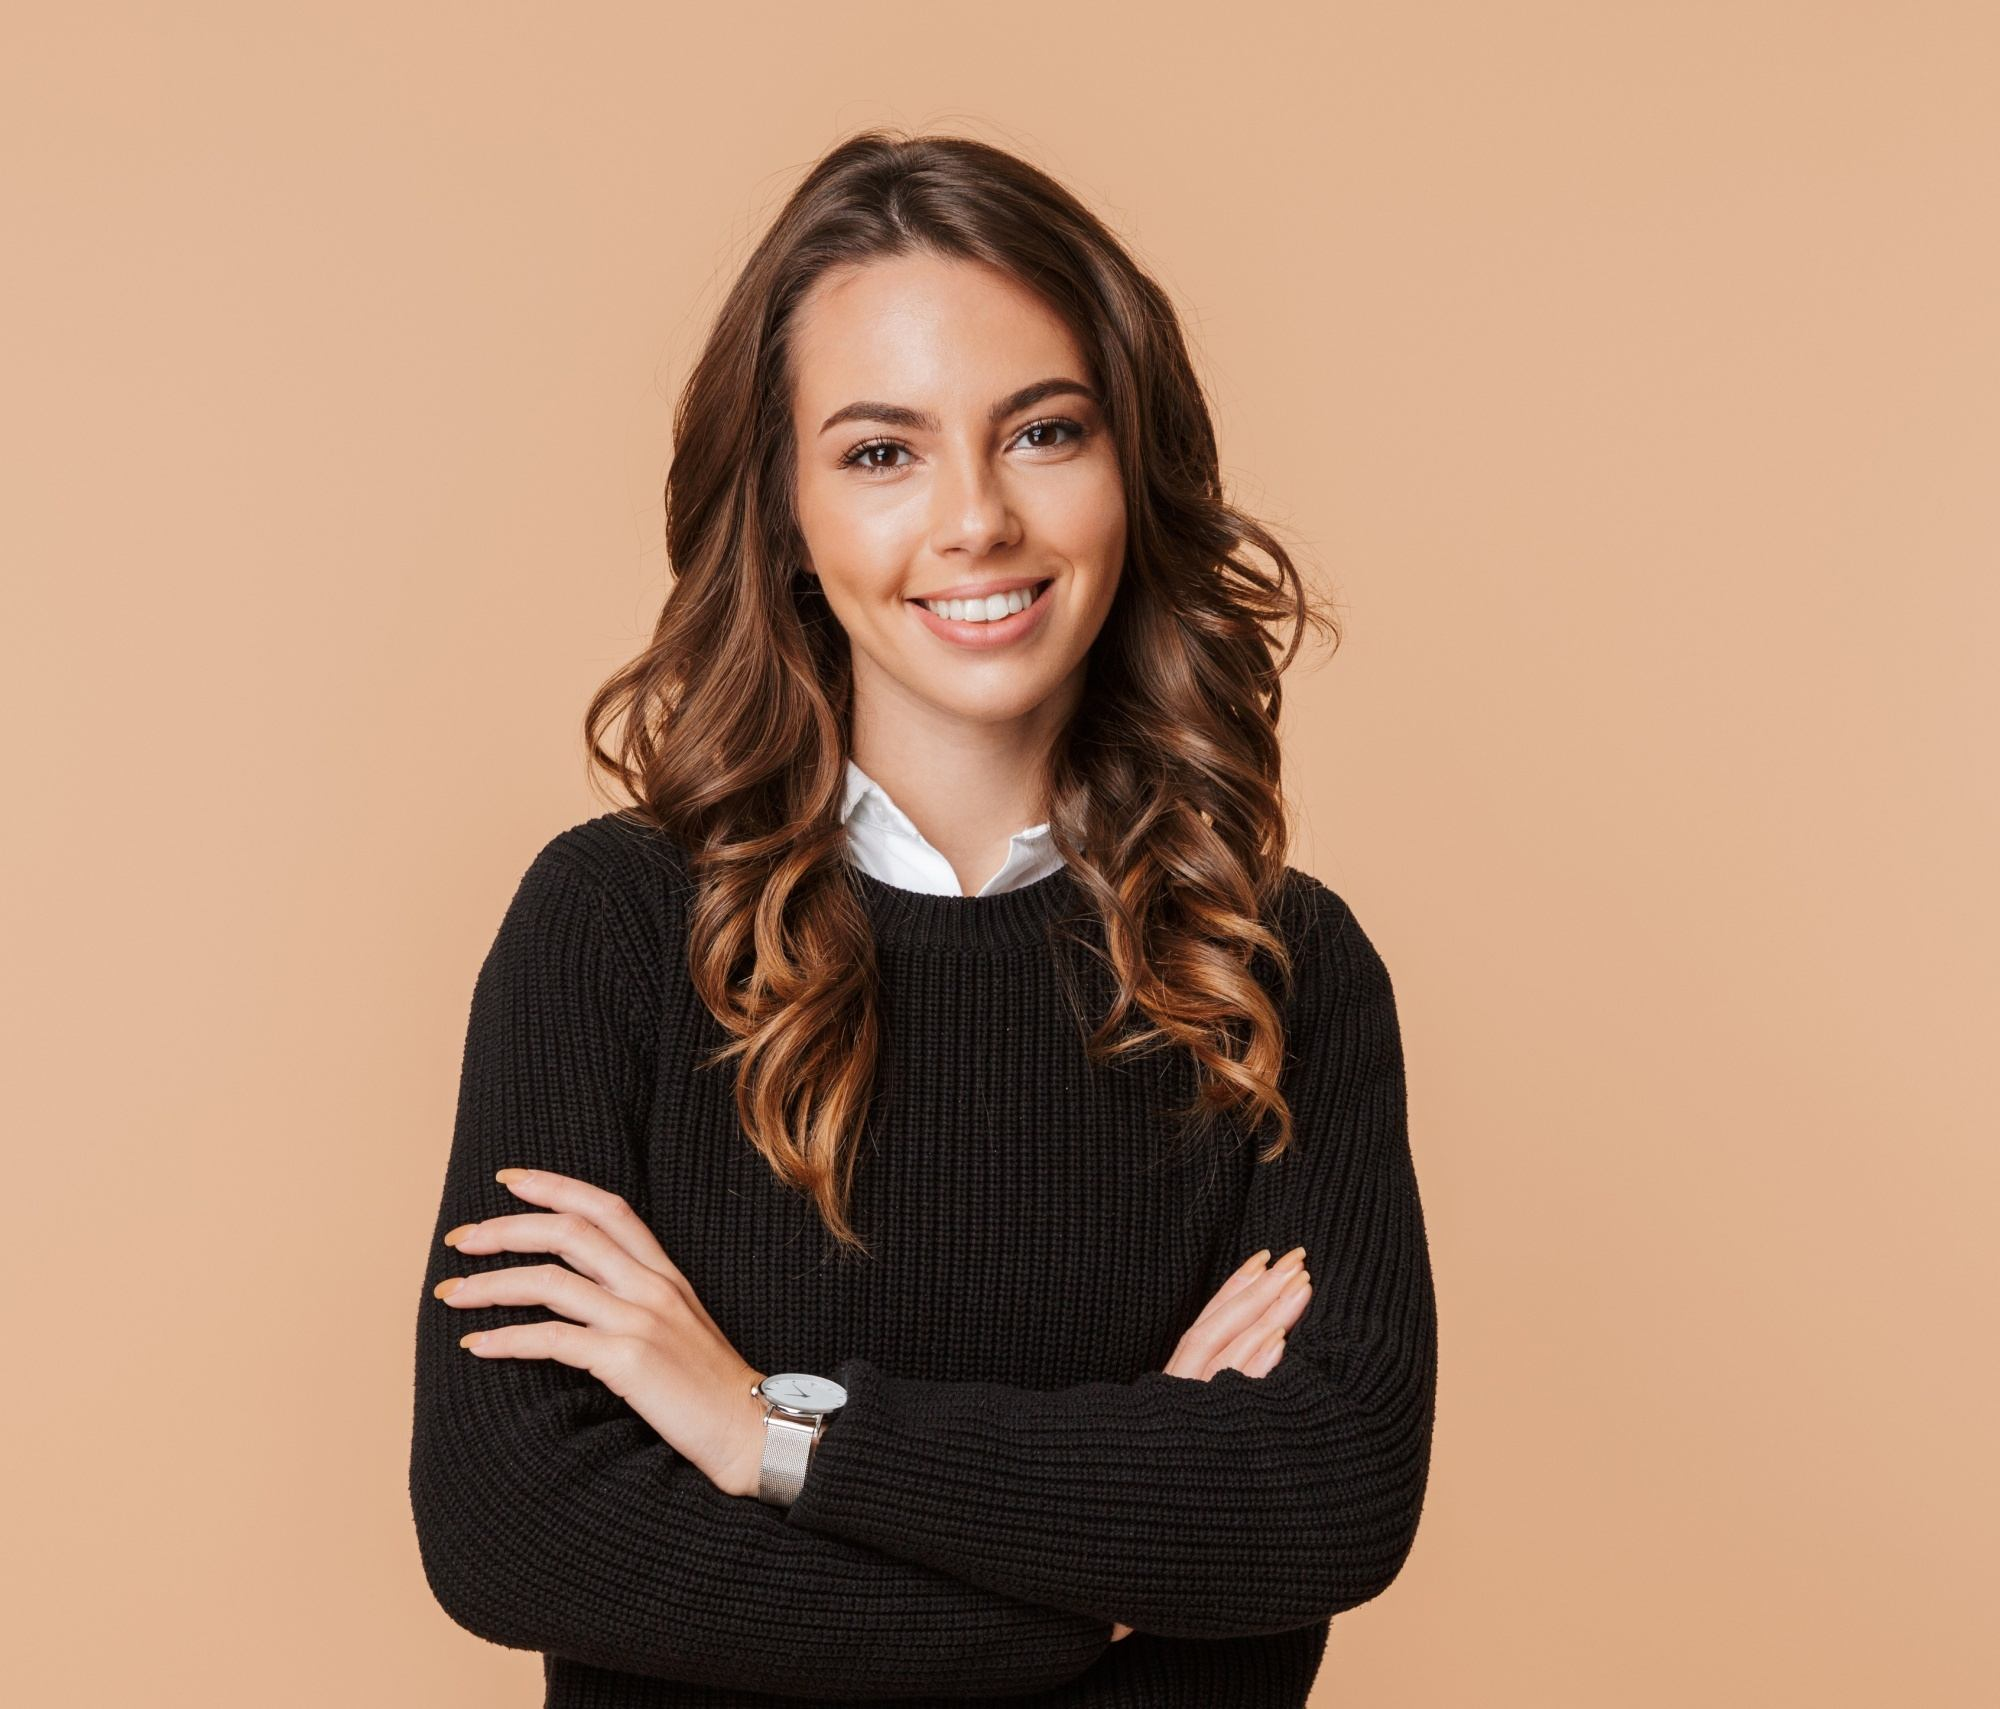 Golden brown hair color: Woman with long wavy brown hair wearing a black shirt against a peach backdrop